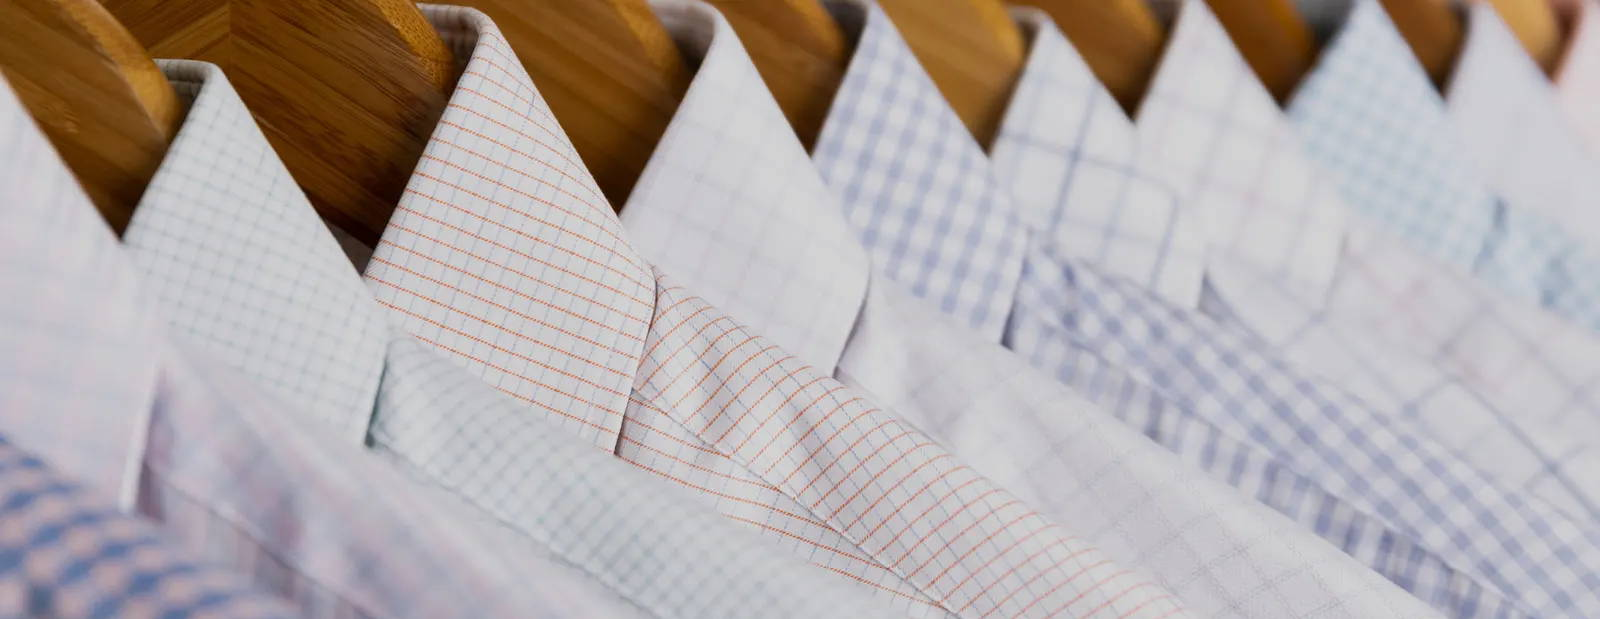 Up close of new Spring dress shirts on hangers